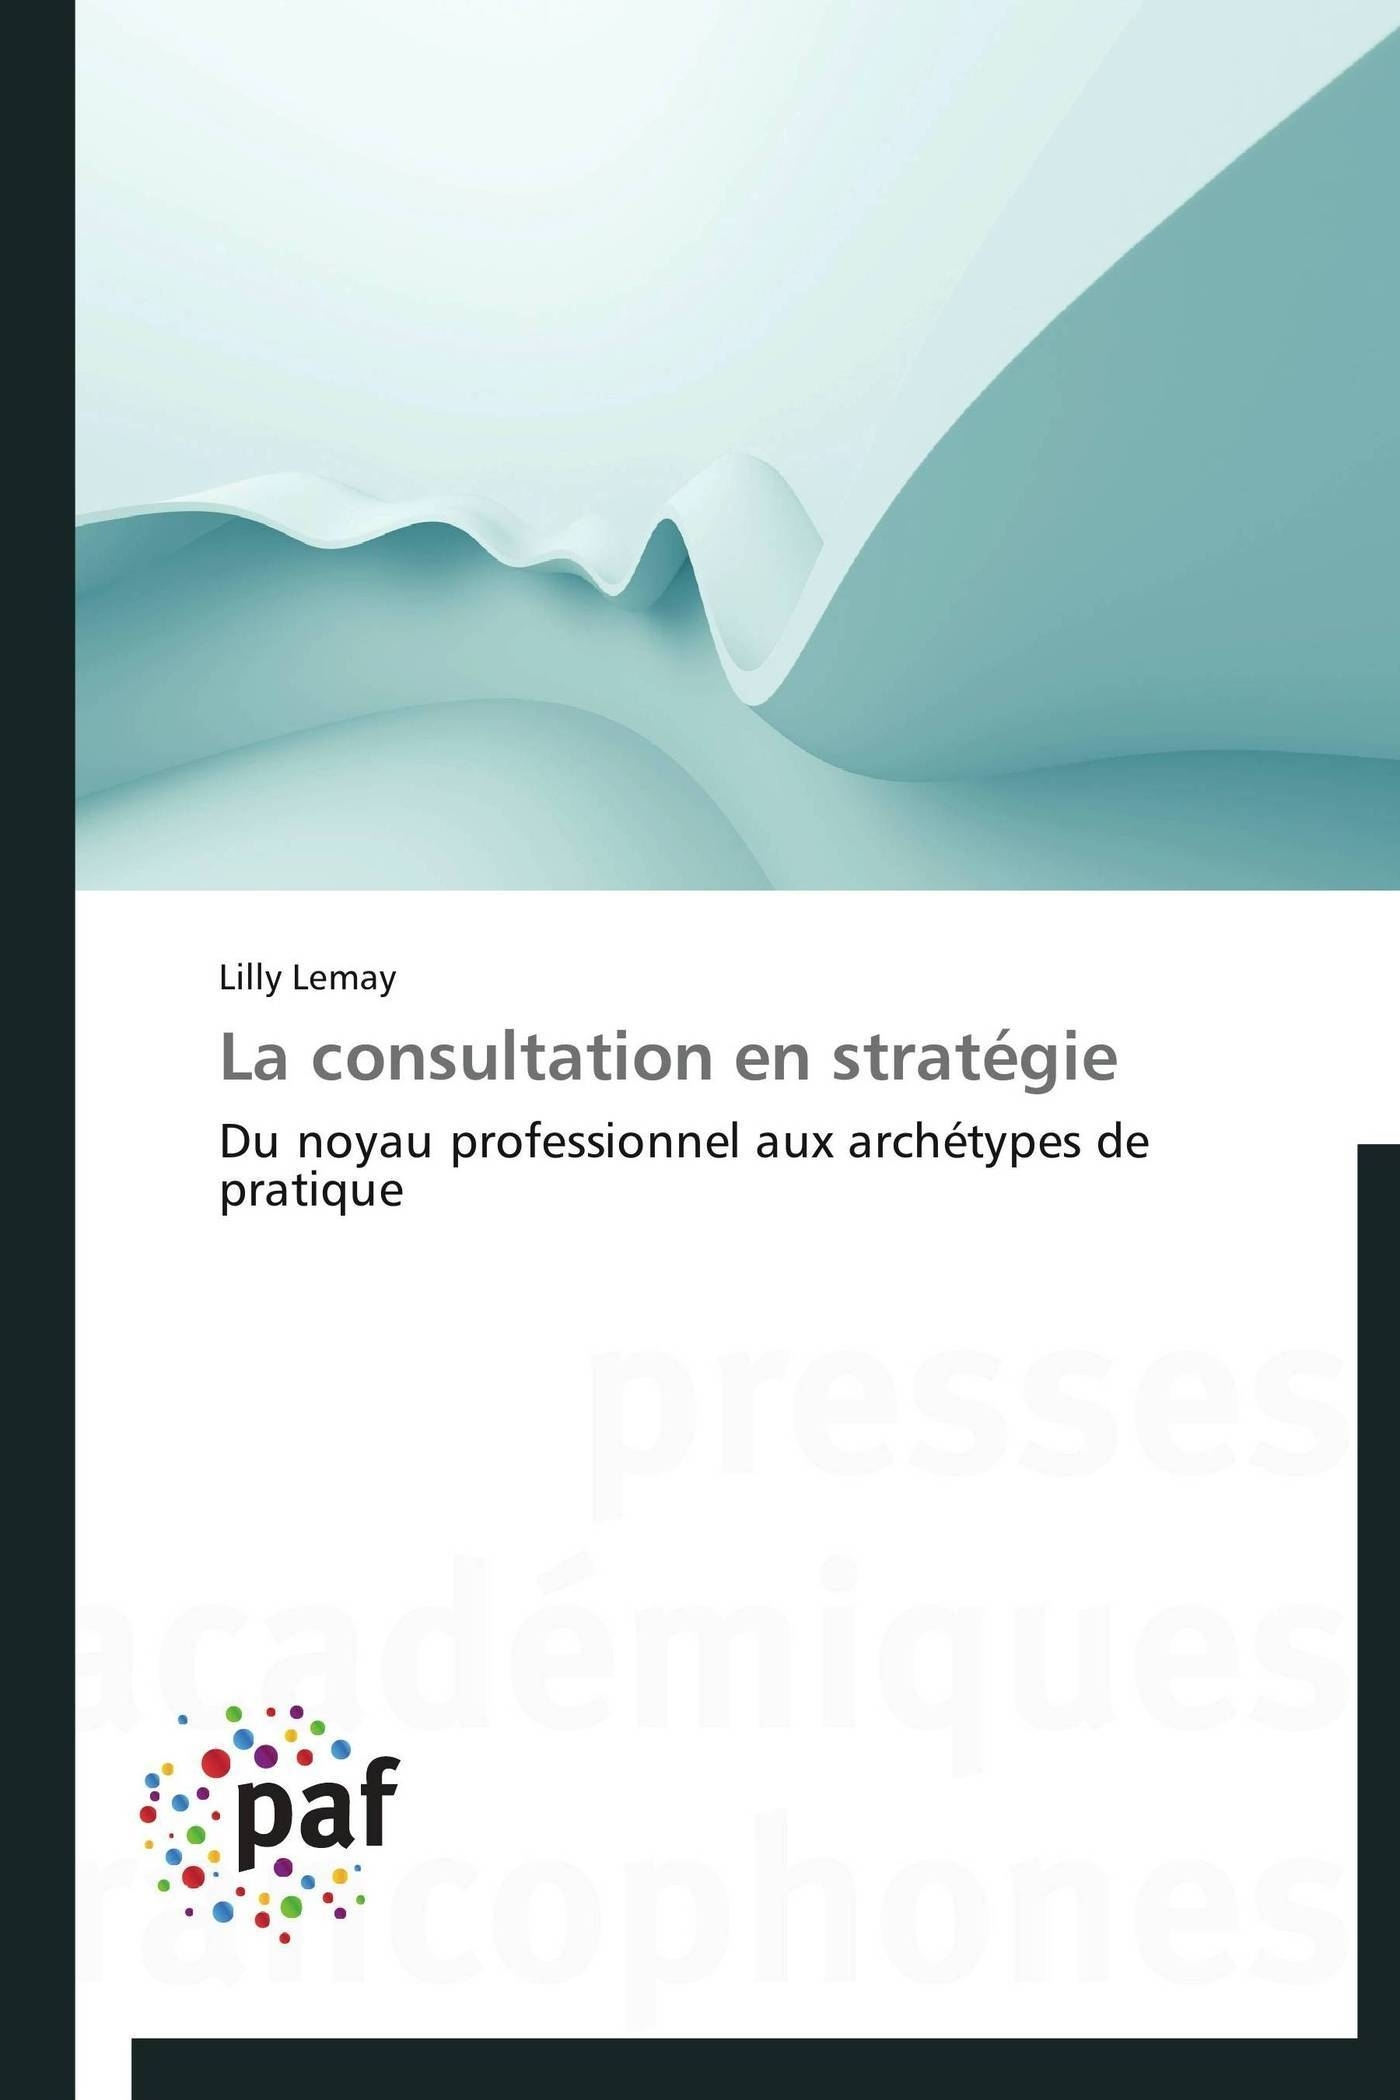 LA CONSULTATION EN STRATEGIE